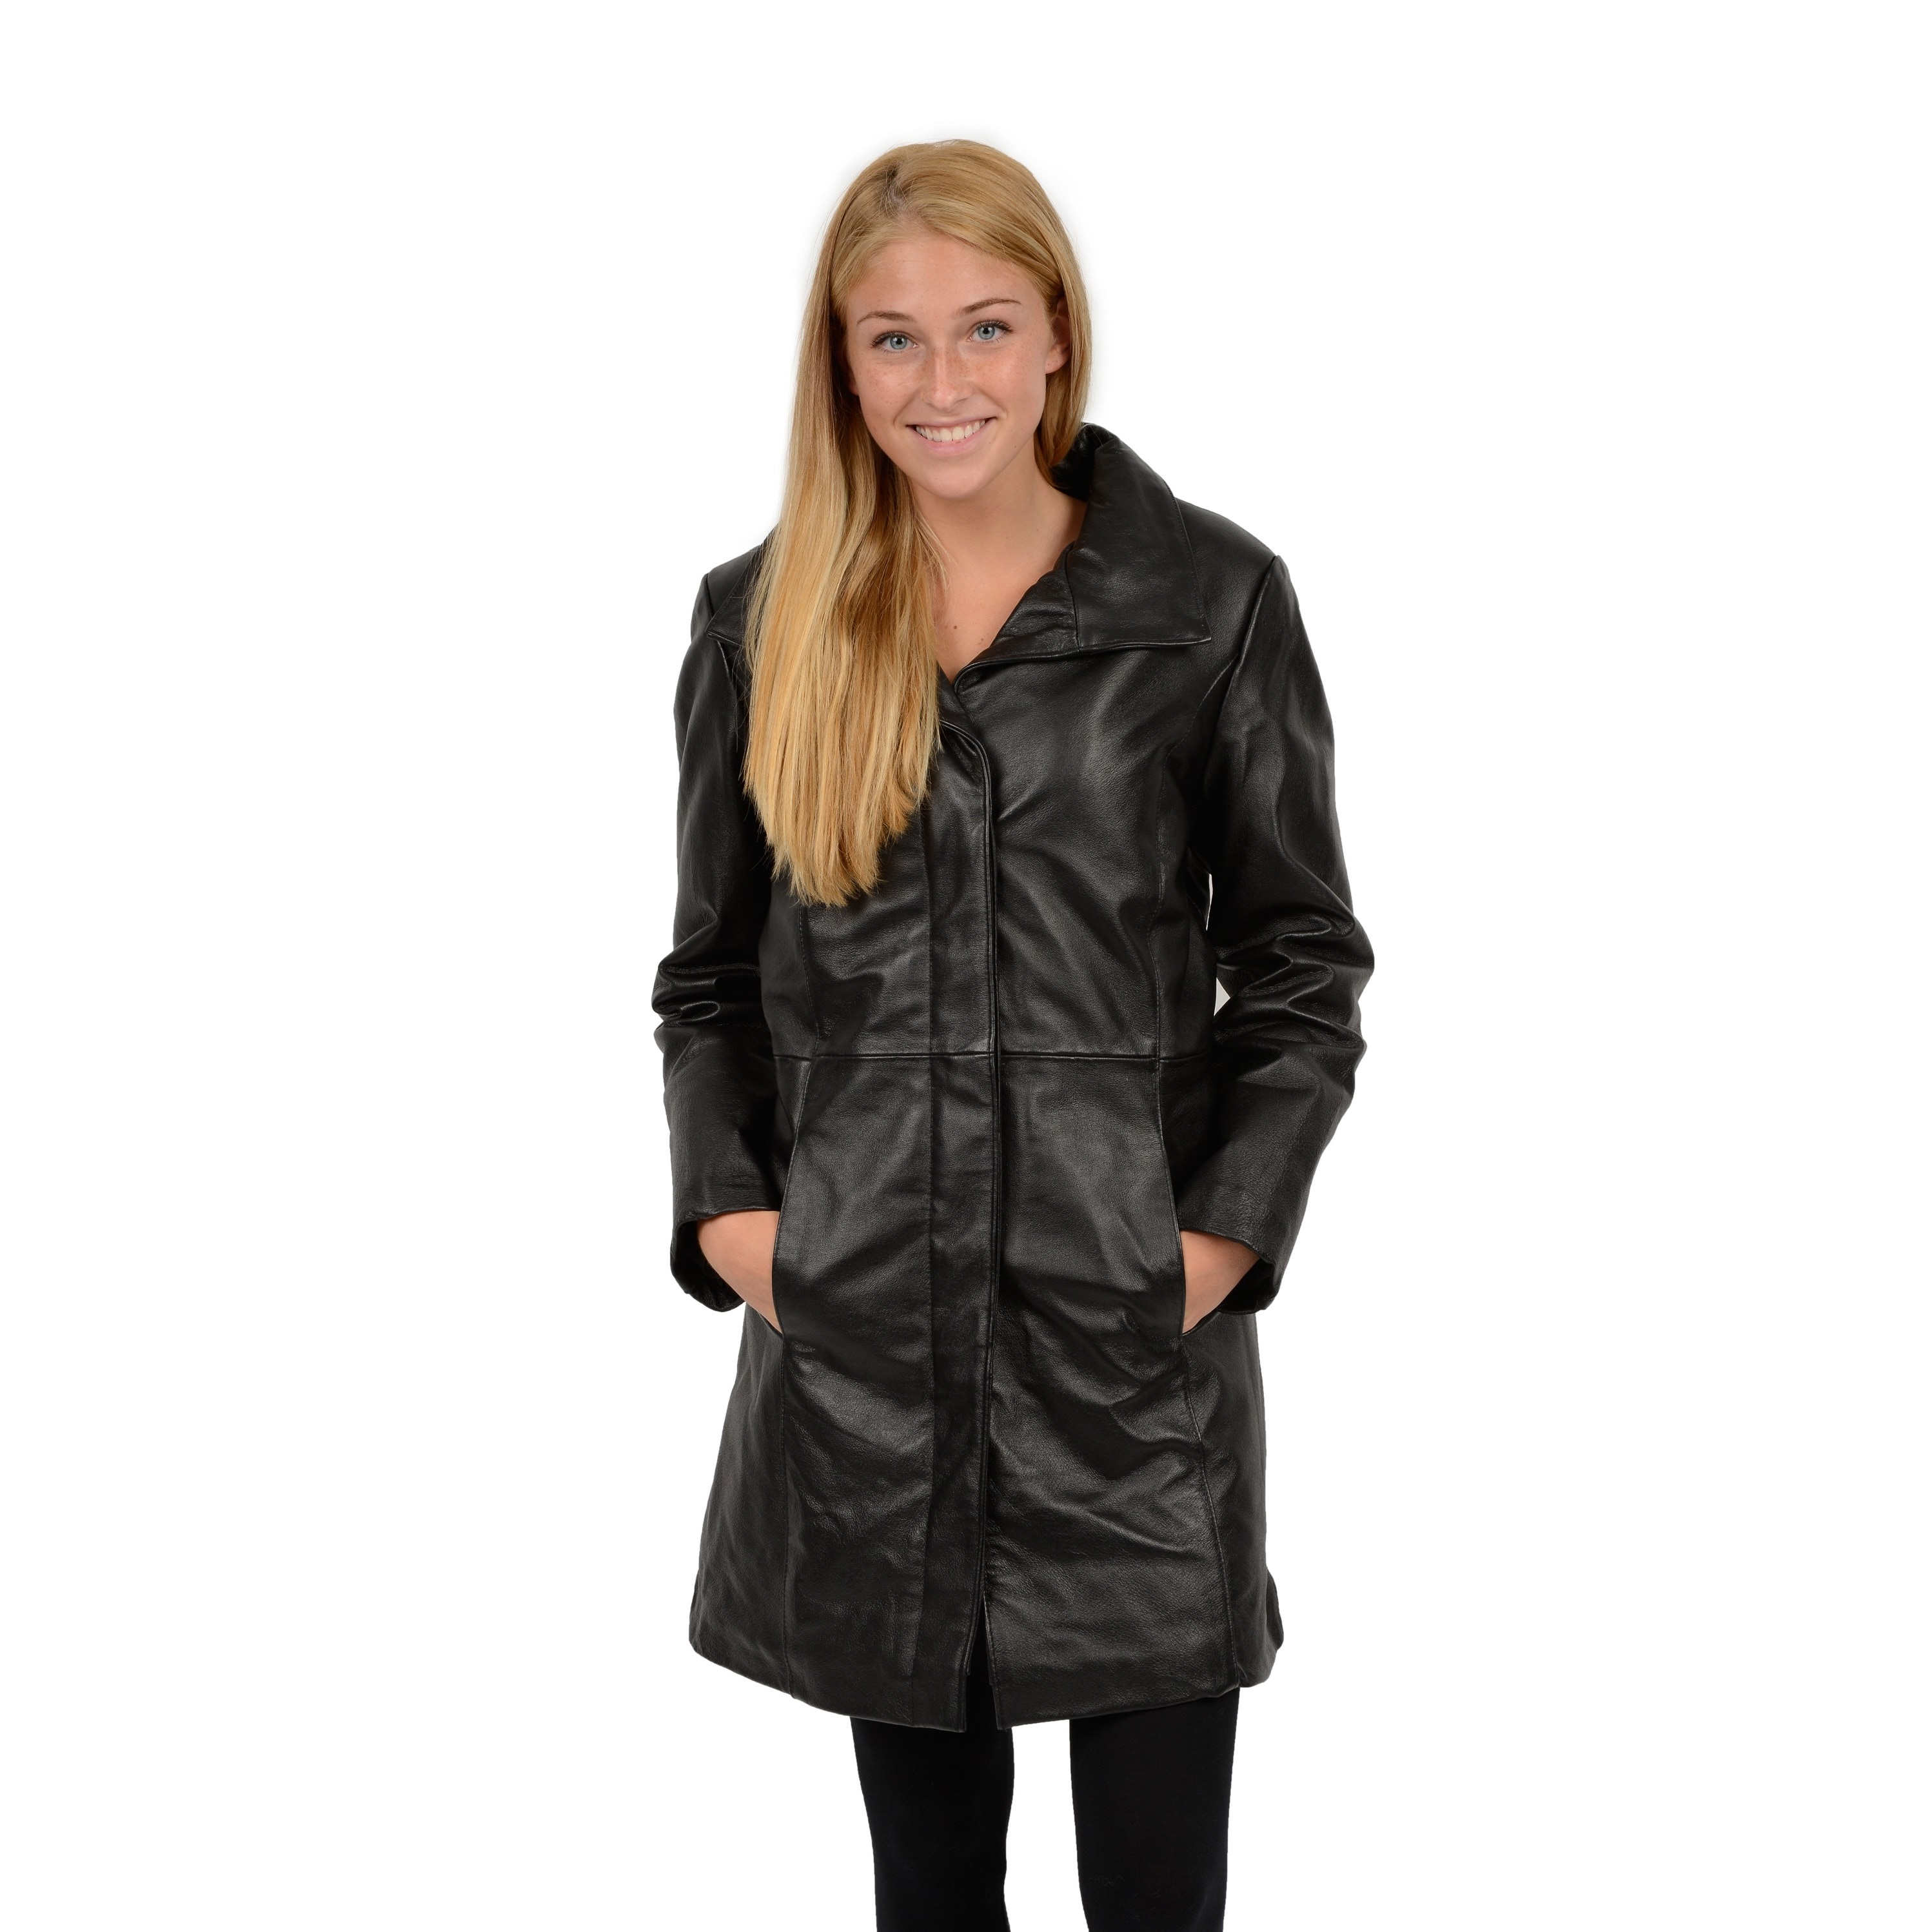 EXcelled  Women's Black Leather Pencil Coat with Converti...